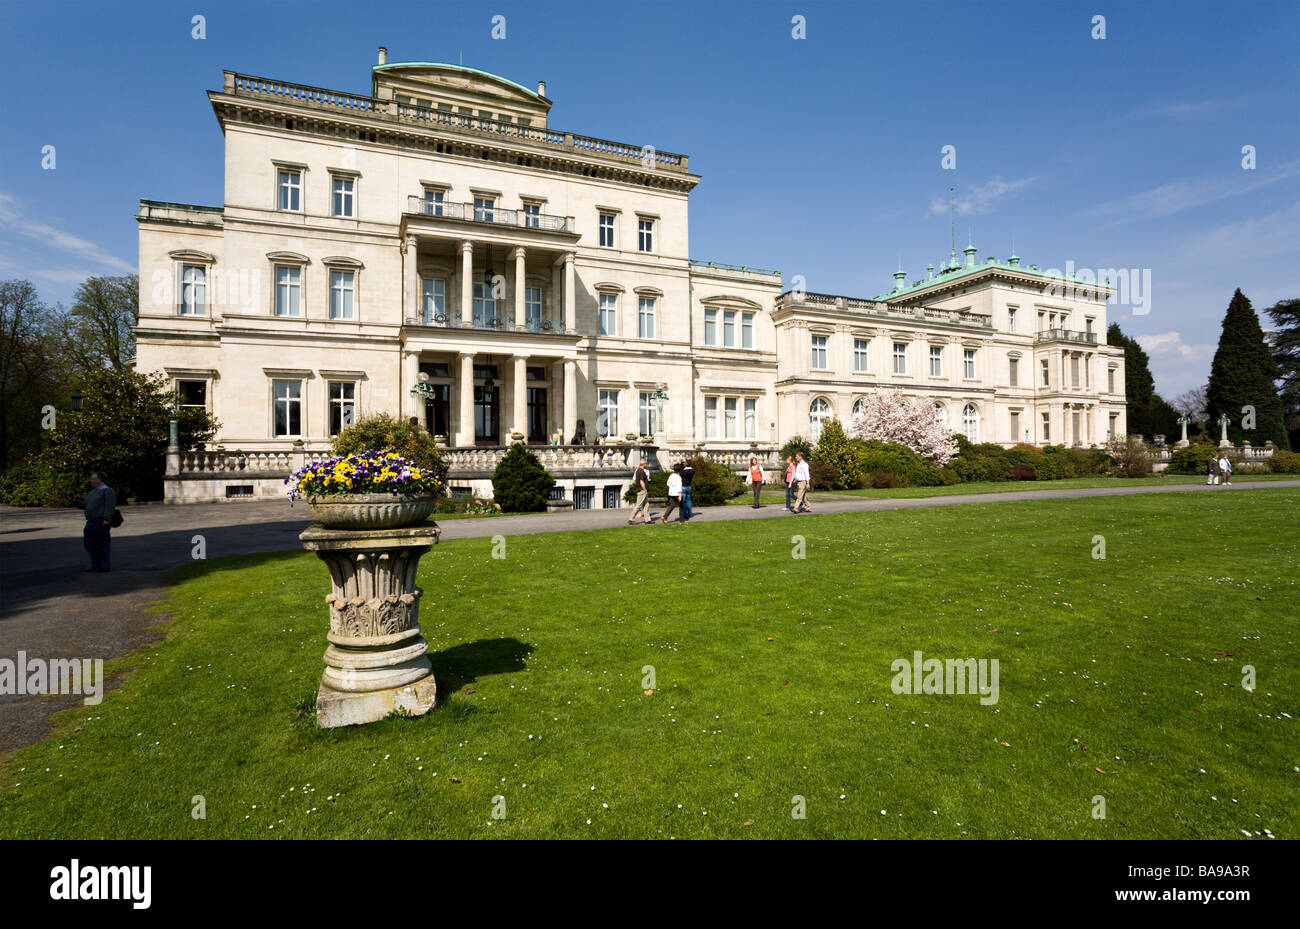 Villa Huegel in Essen, former residence of the industrial magnates family Krupp, Ruhr area, North Rhine-Westphalia, Stock Photo